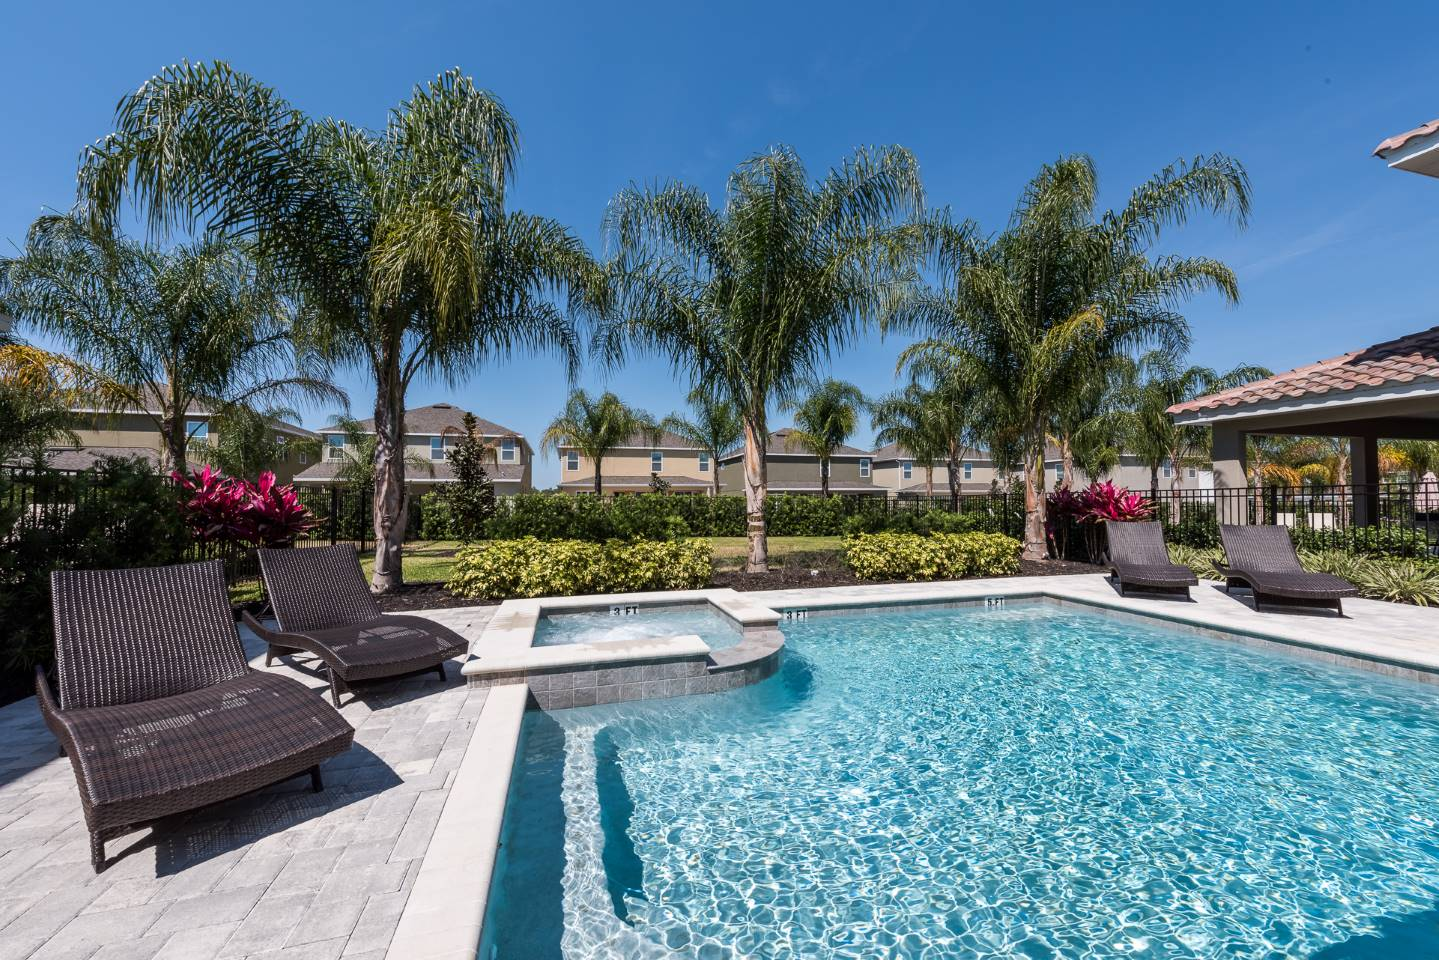 [amenities:pool-and-spa:1] Pool and Spa